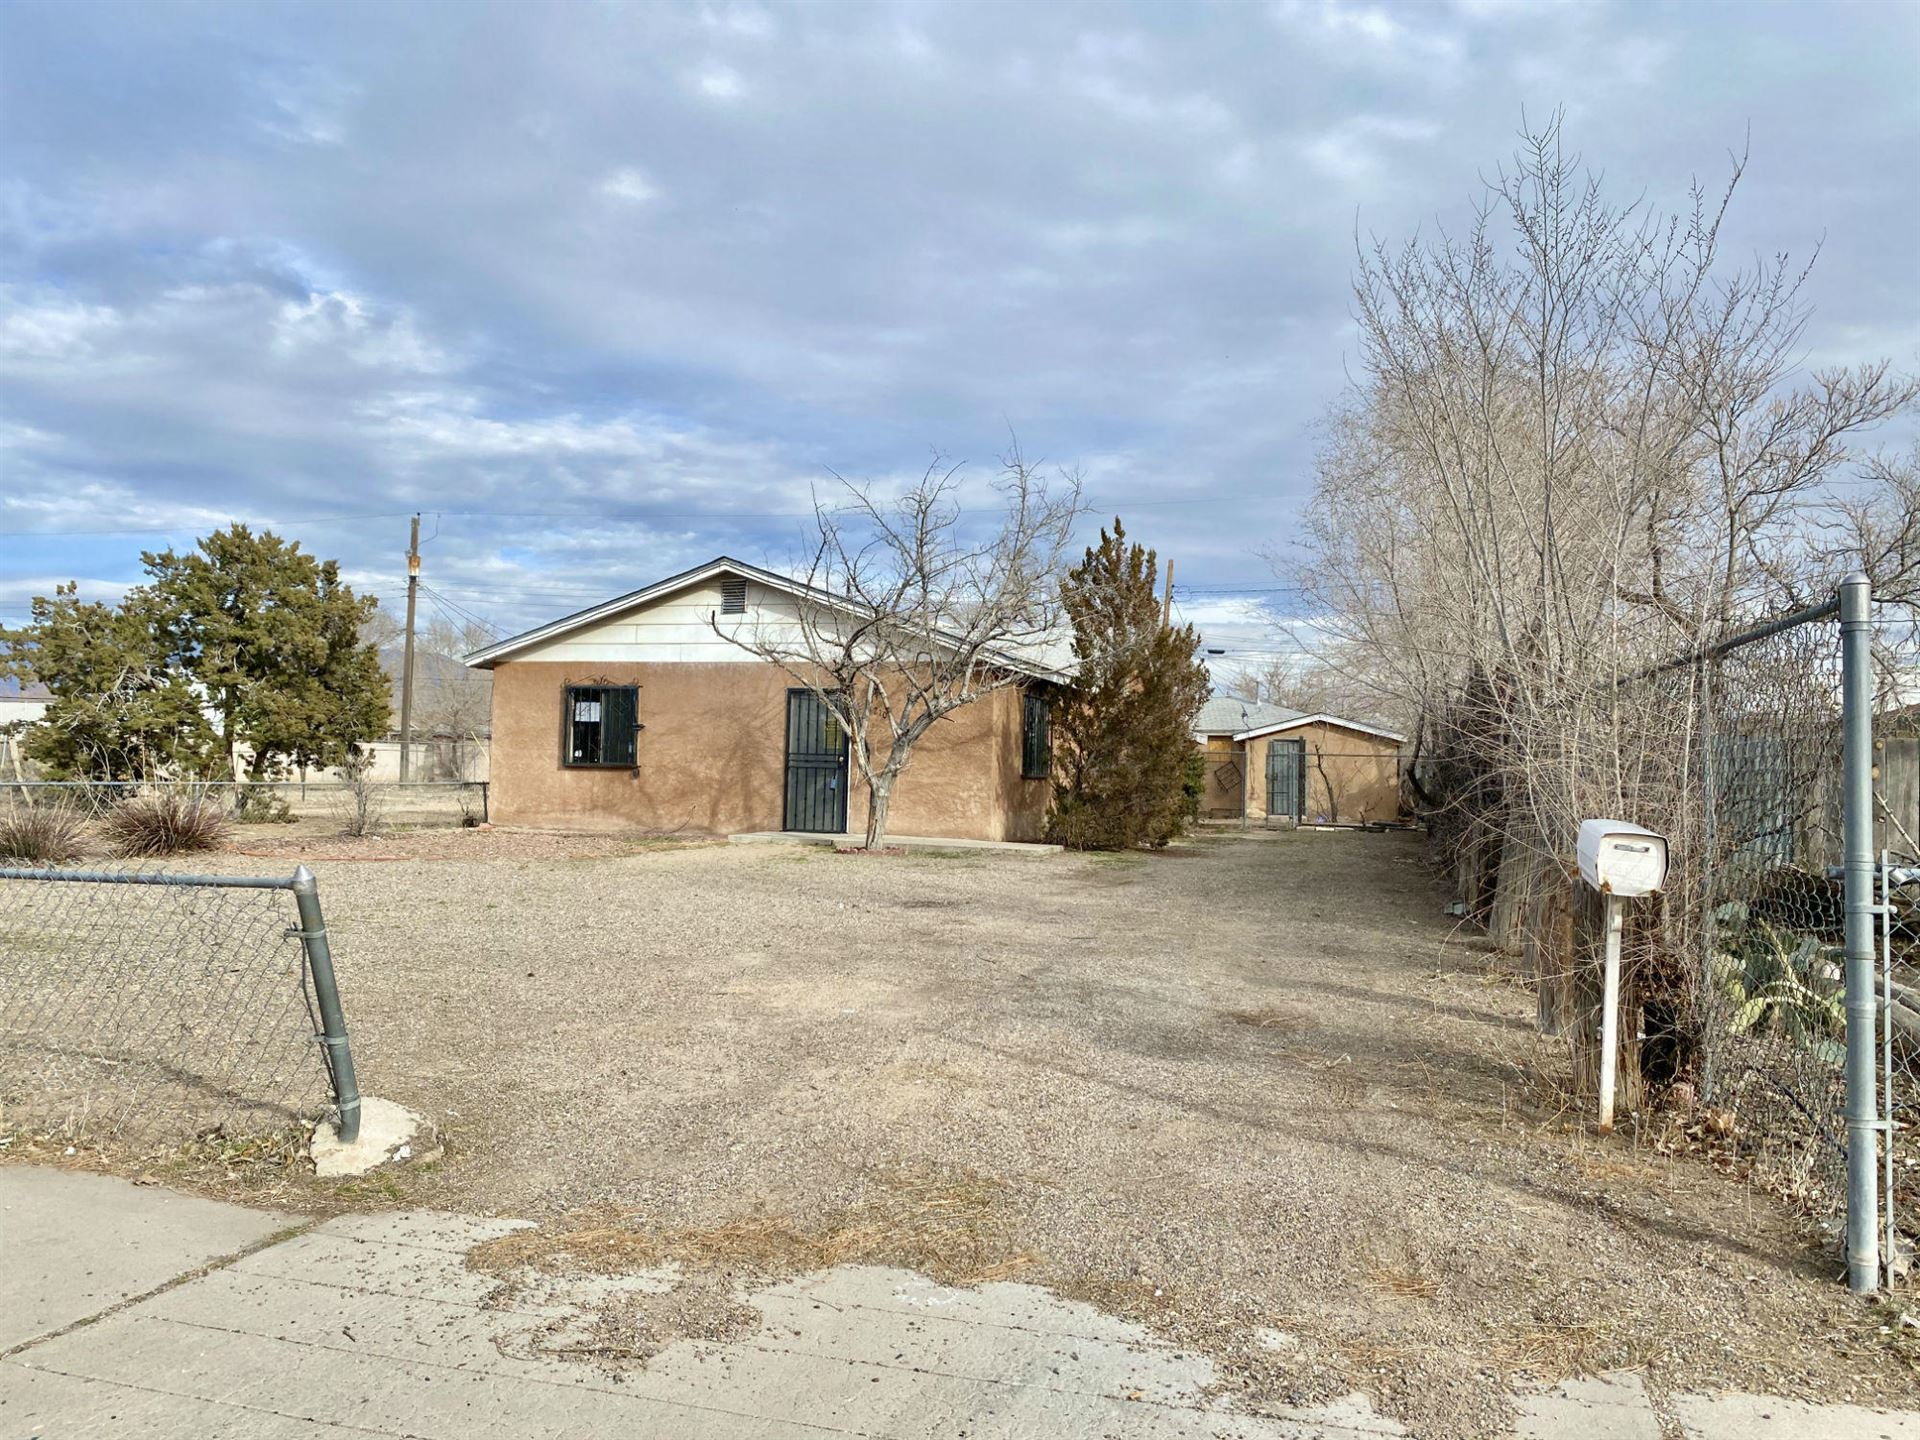 Photo of 1210 Los Tomases Drive NW, Albuquerque, NM 87102 (MLS # 962277)